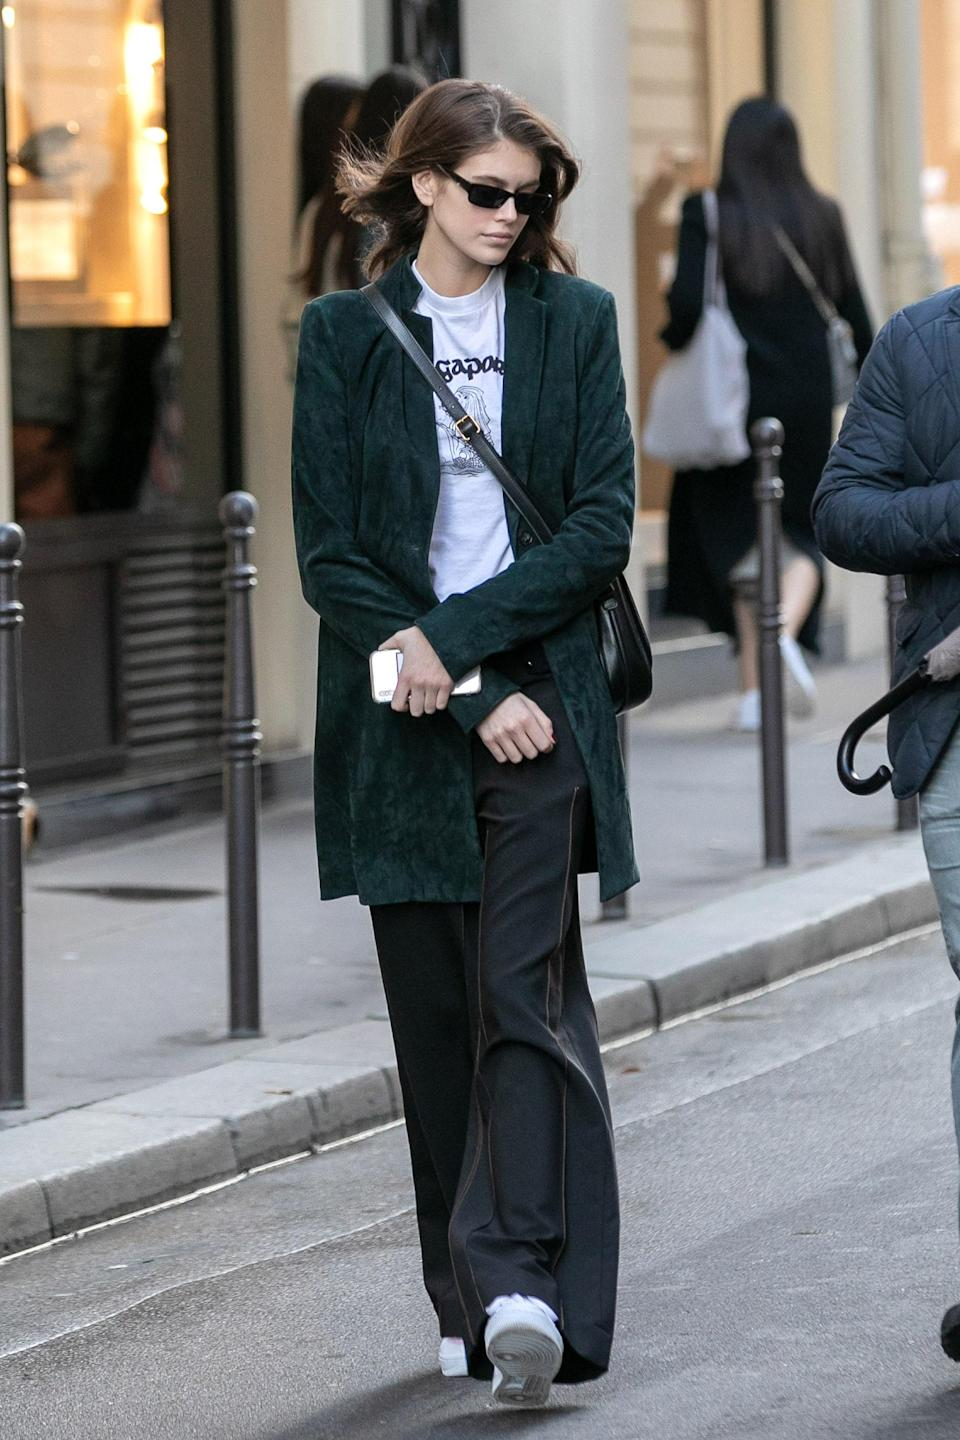 This is an outfit she rocked to the iconic Chanel Rue de Cambon office.